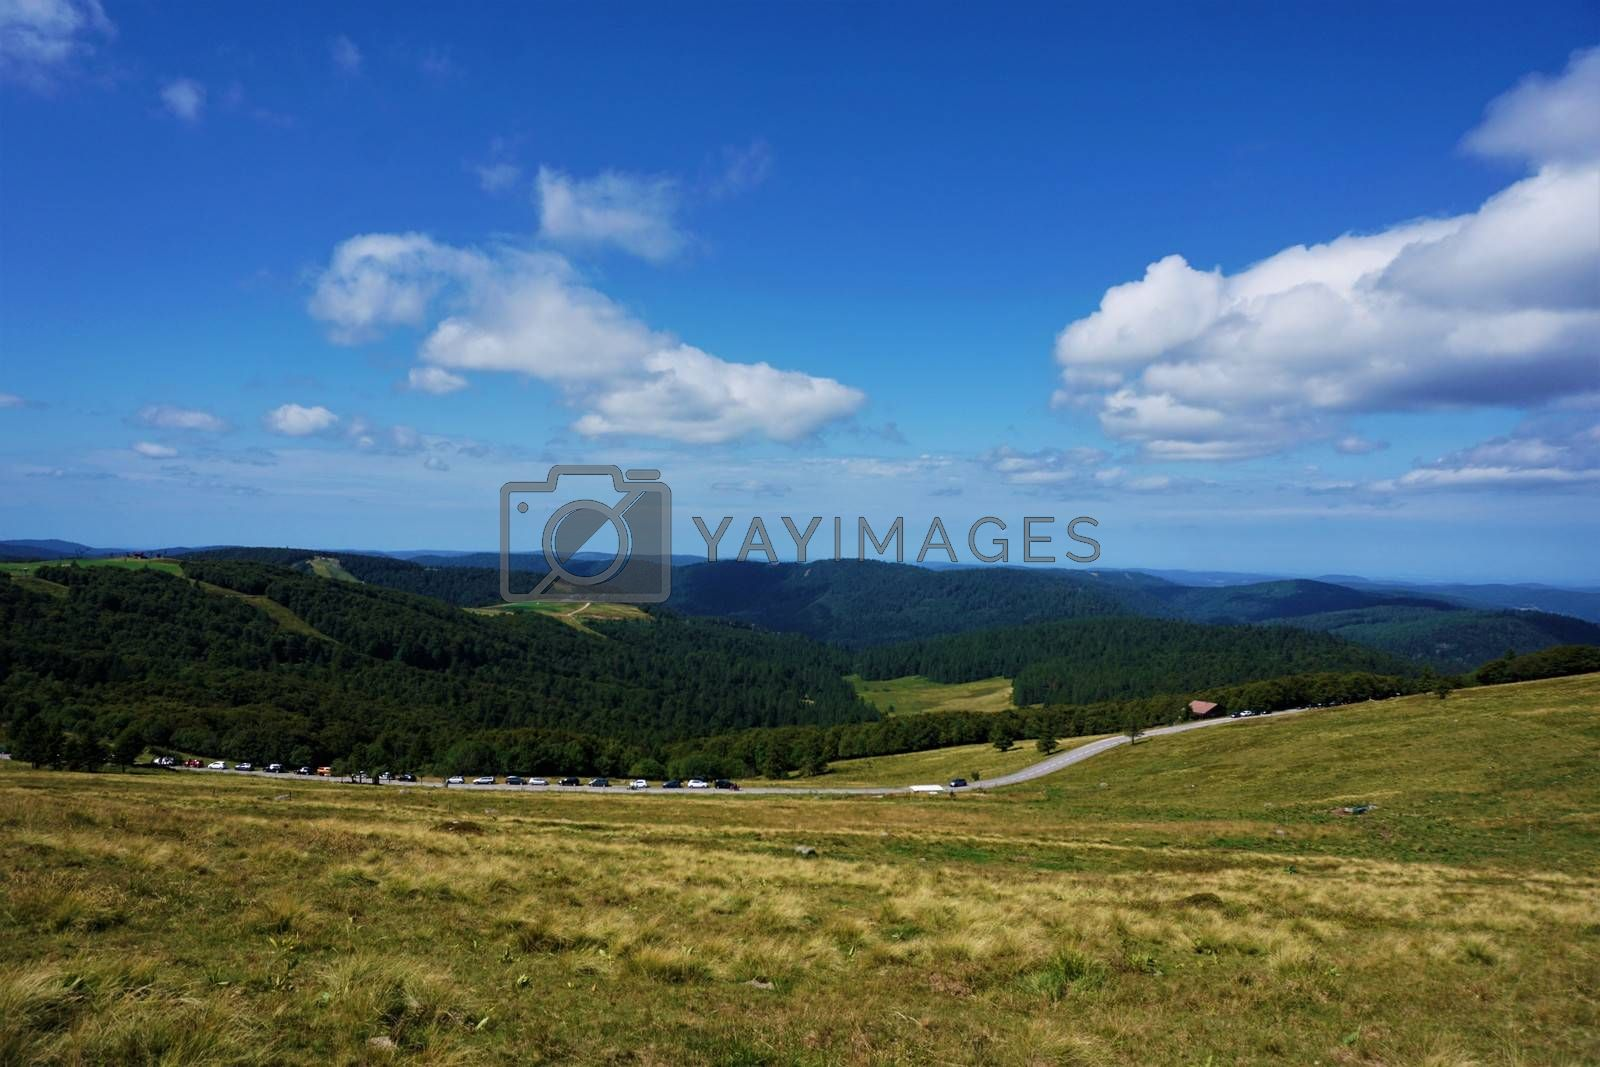 Beautiful view from Le Hohneck mountain over the hilly landscape of the Vosges mountain range in France